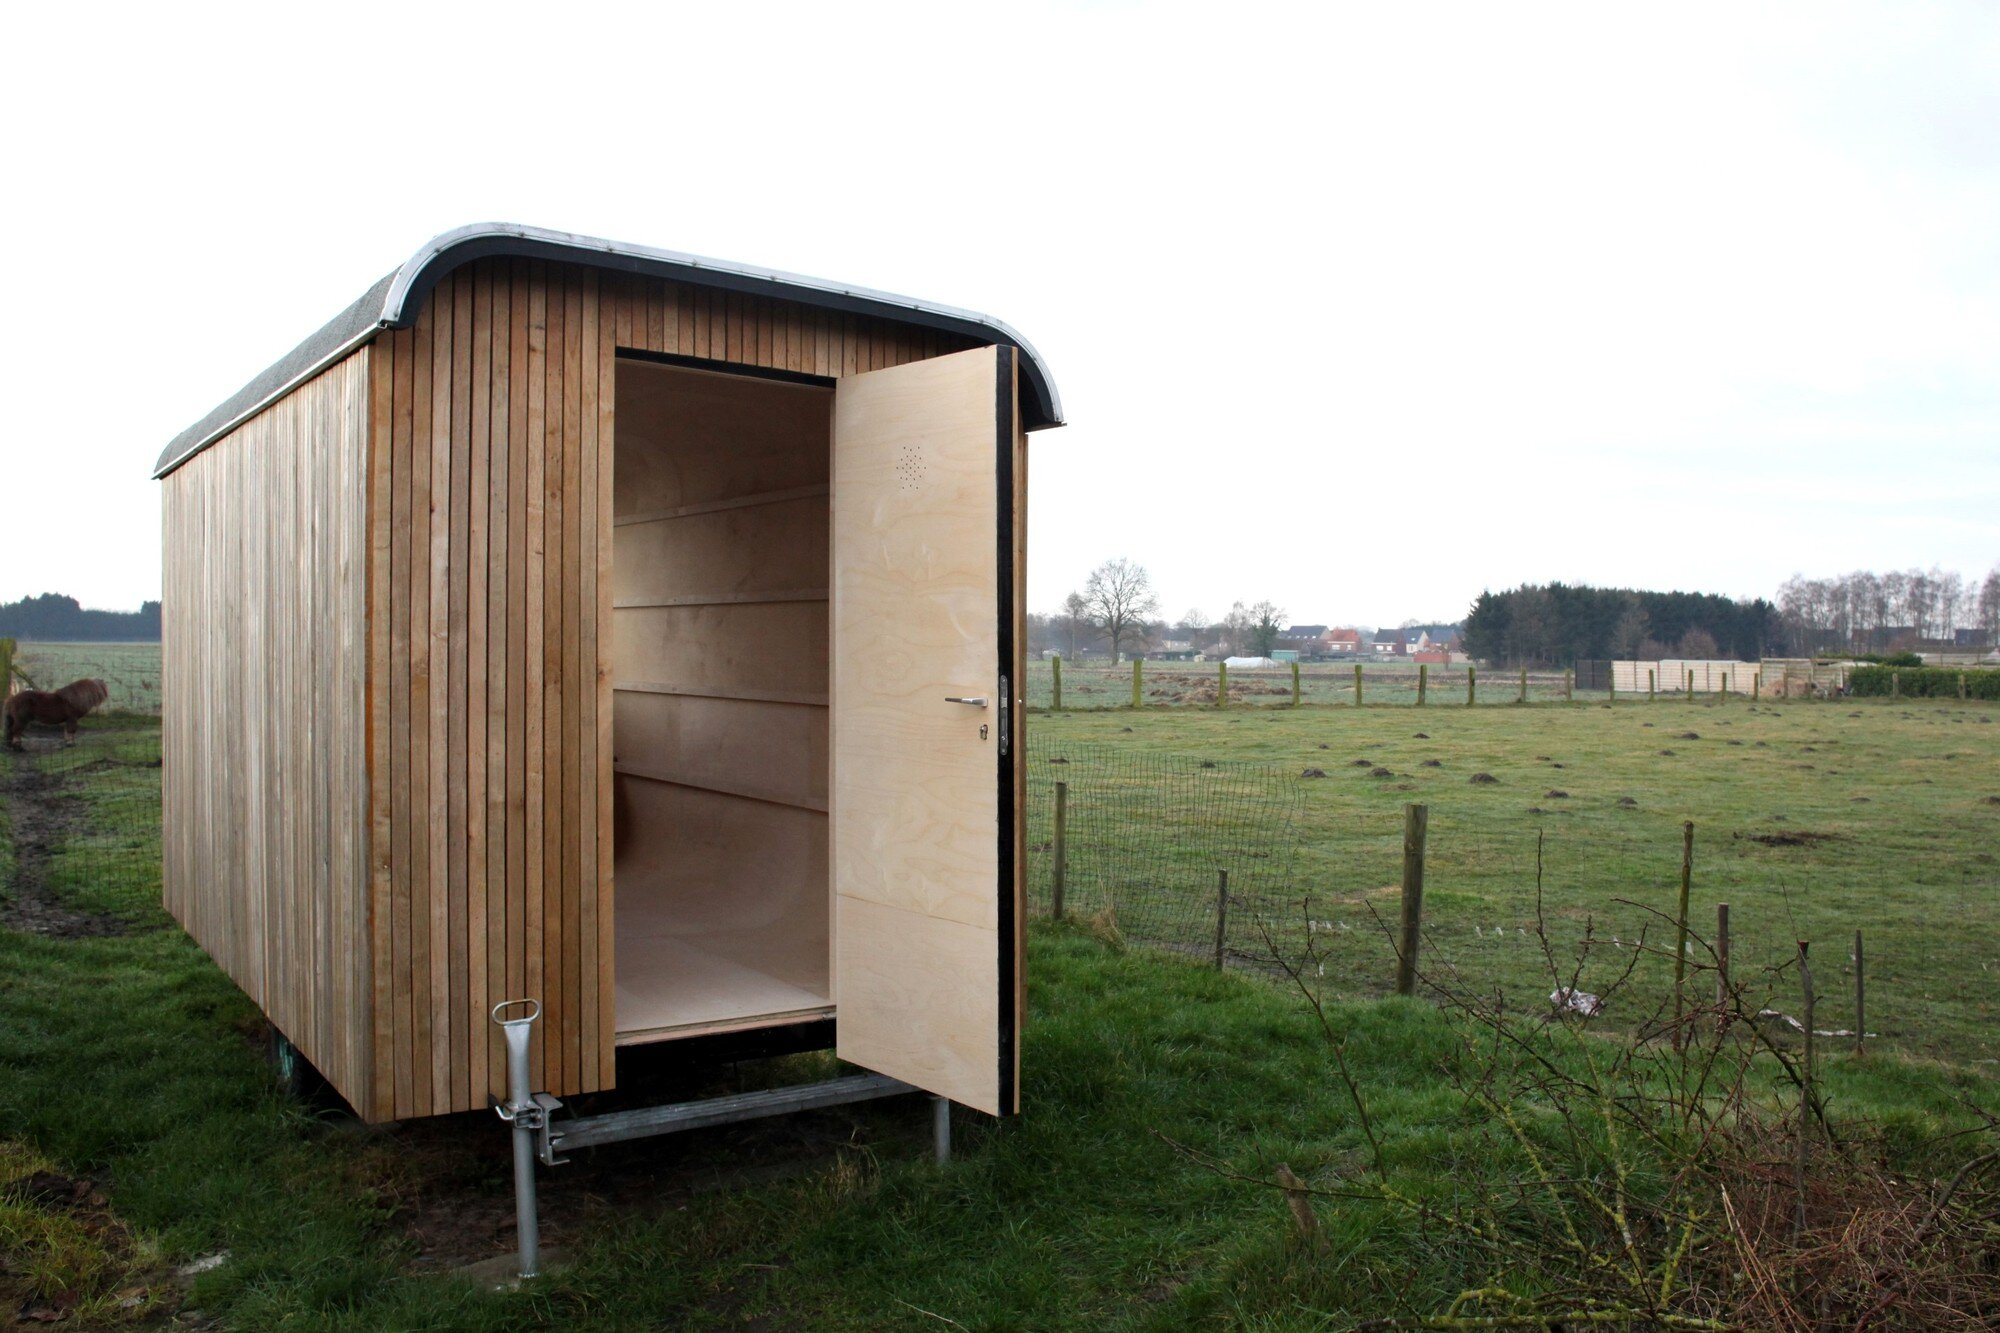 Construction Trailer Conversion - Karel Verstraet - Tiny Space - Exterior - Humble Homes